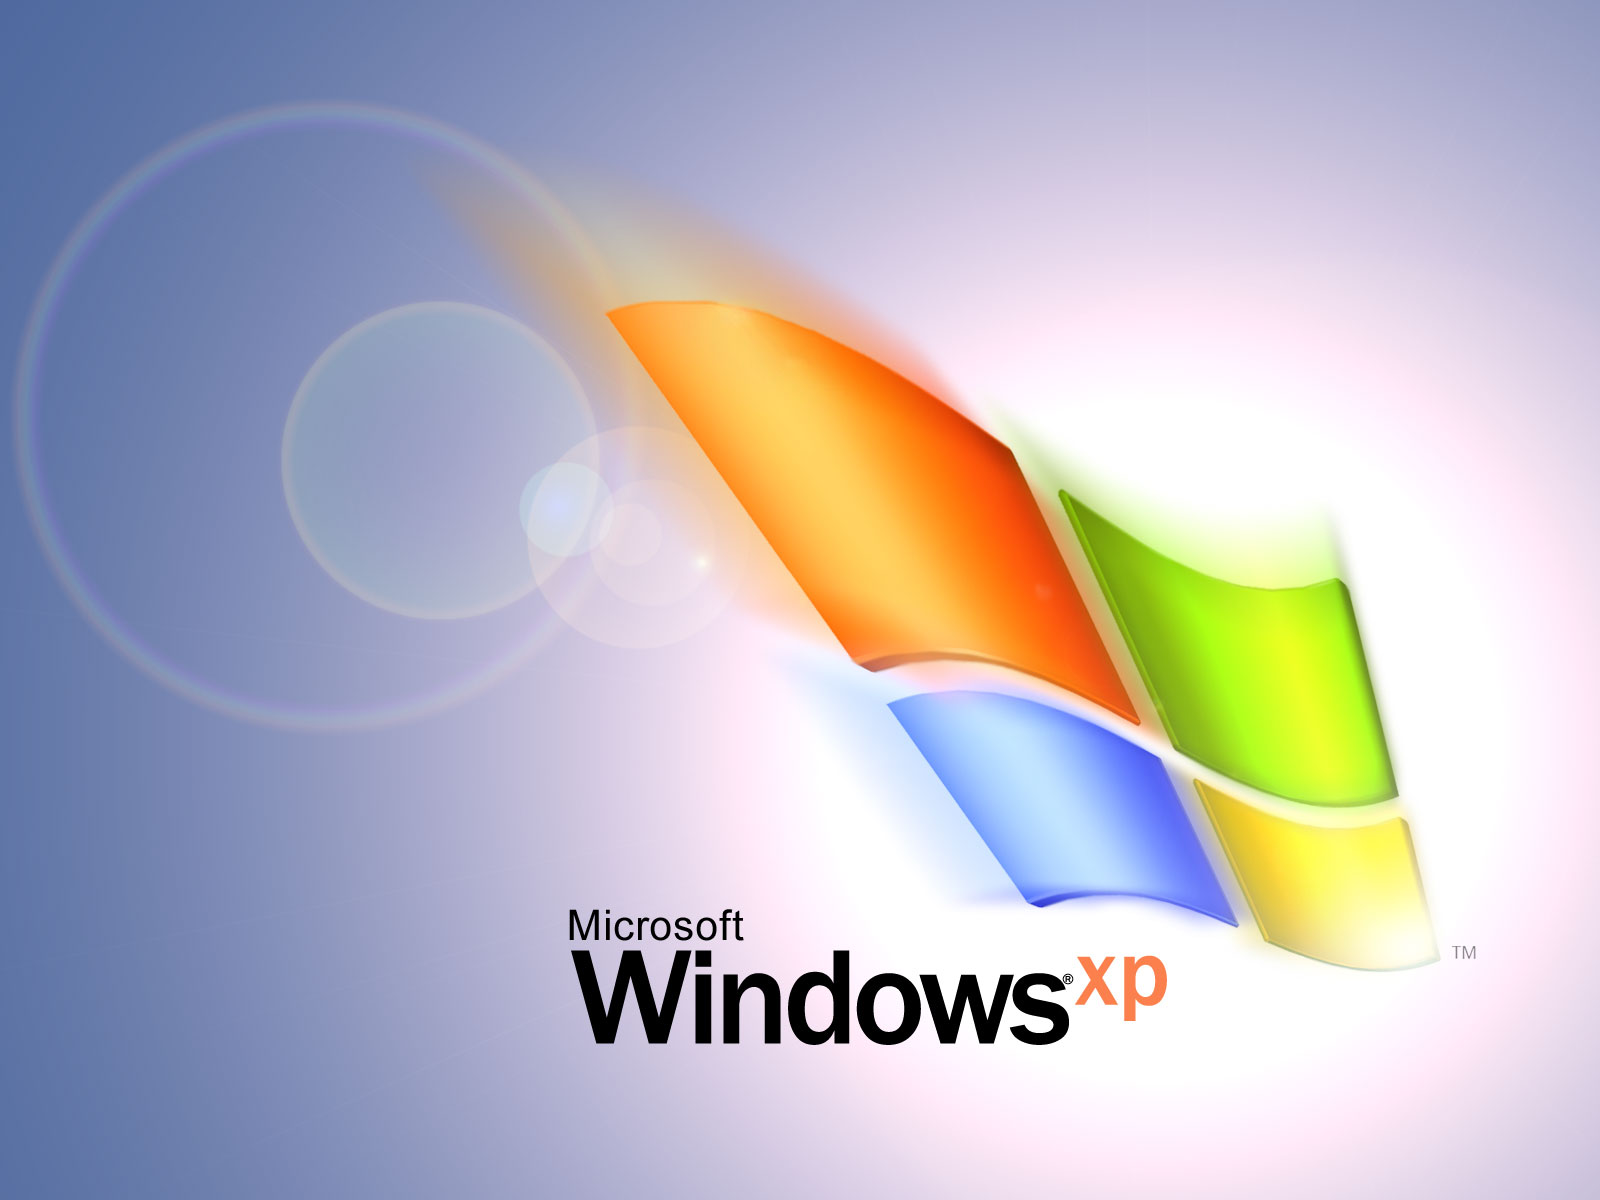 Windows Xp Wallpapers Free Download Sf Wallpaper